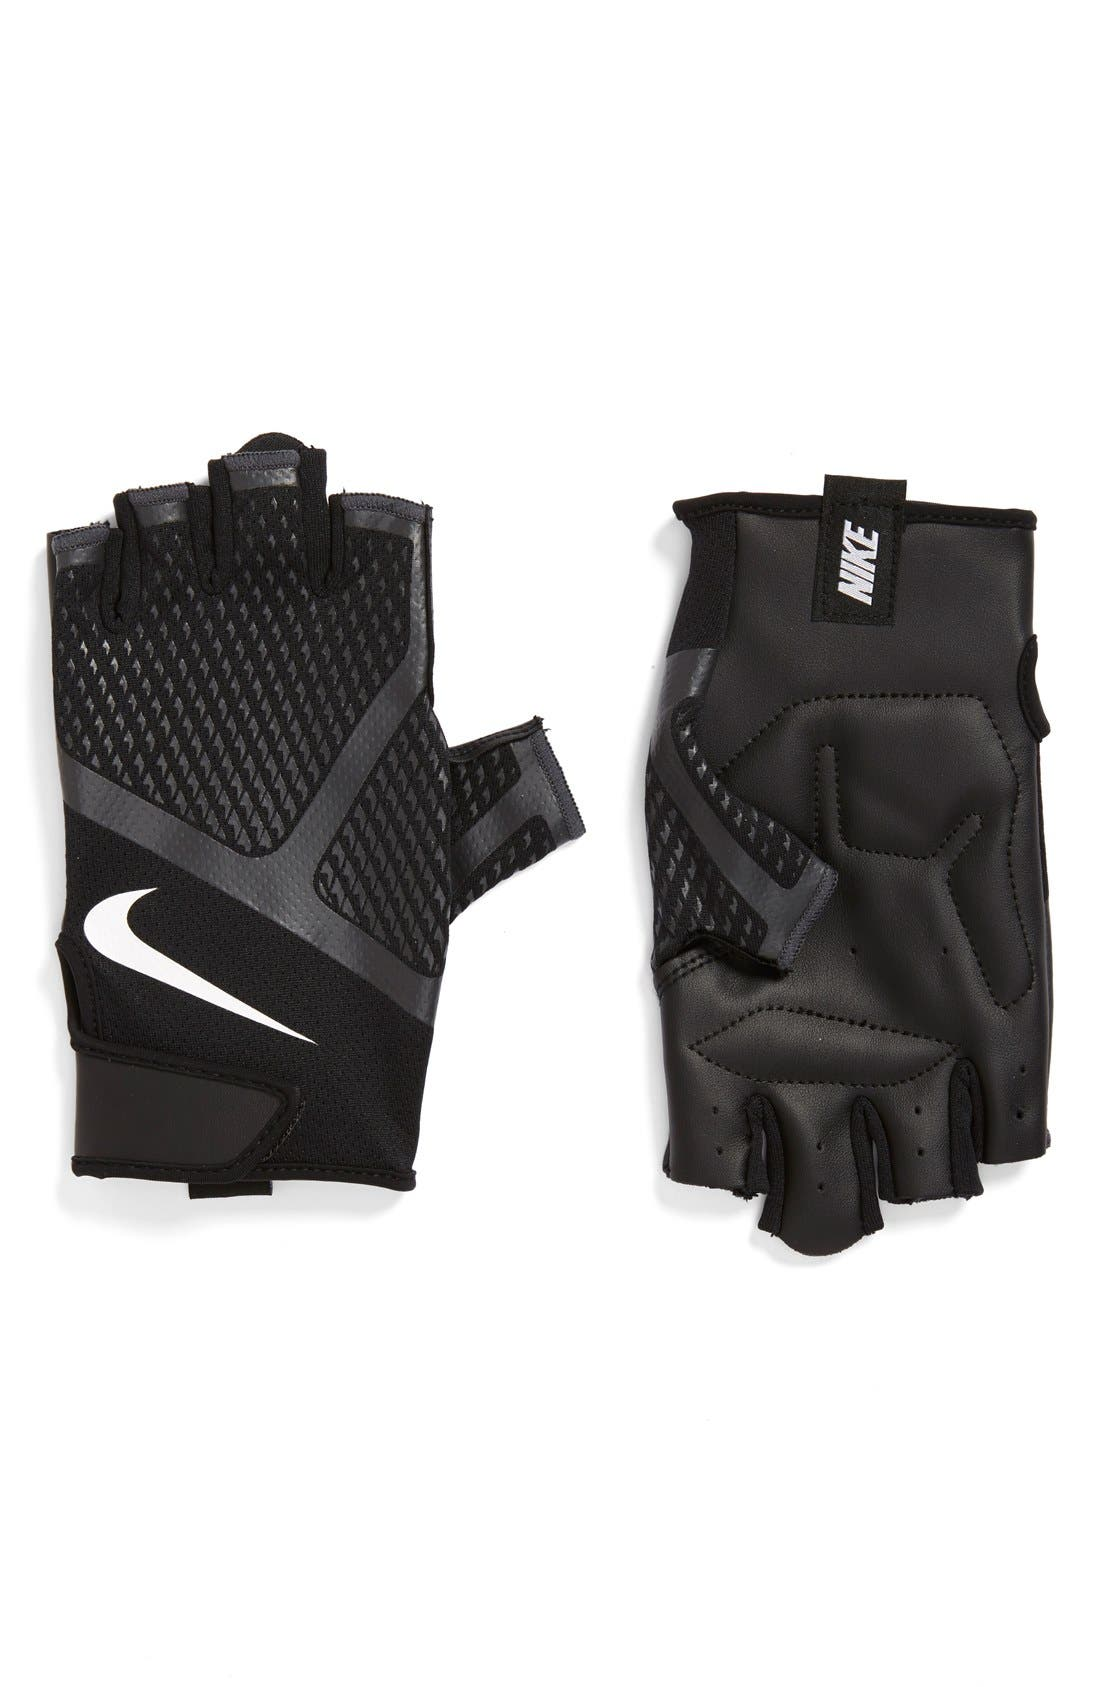 'Renegade' Fingerless Padded Training Gloves,                             Main thumbnail 1, color,                             001